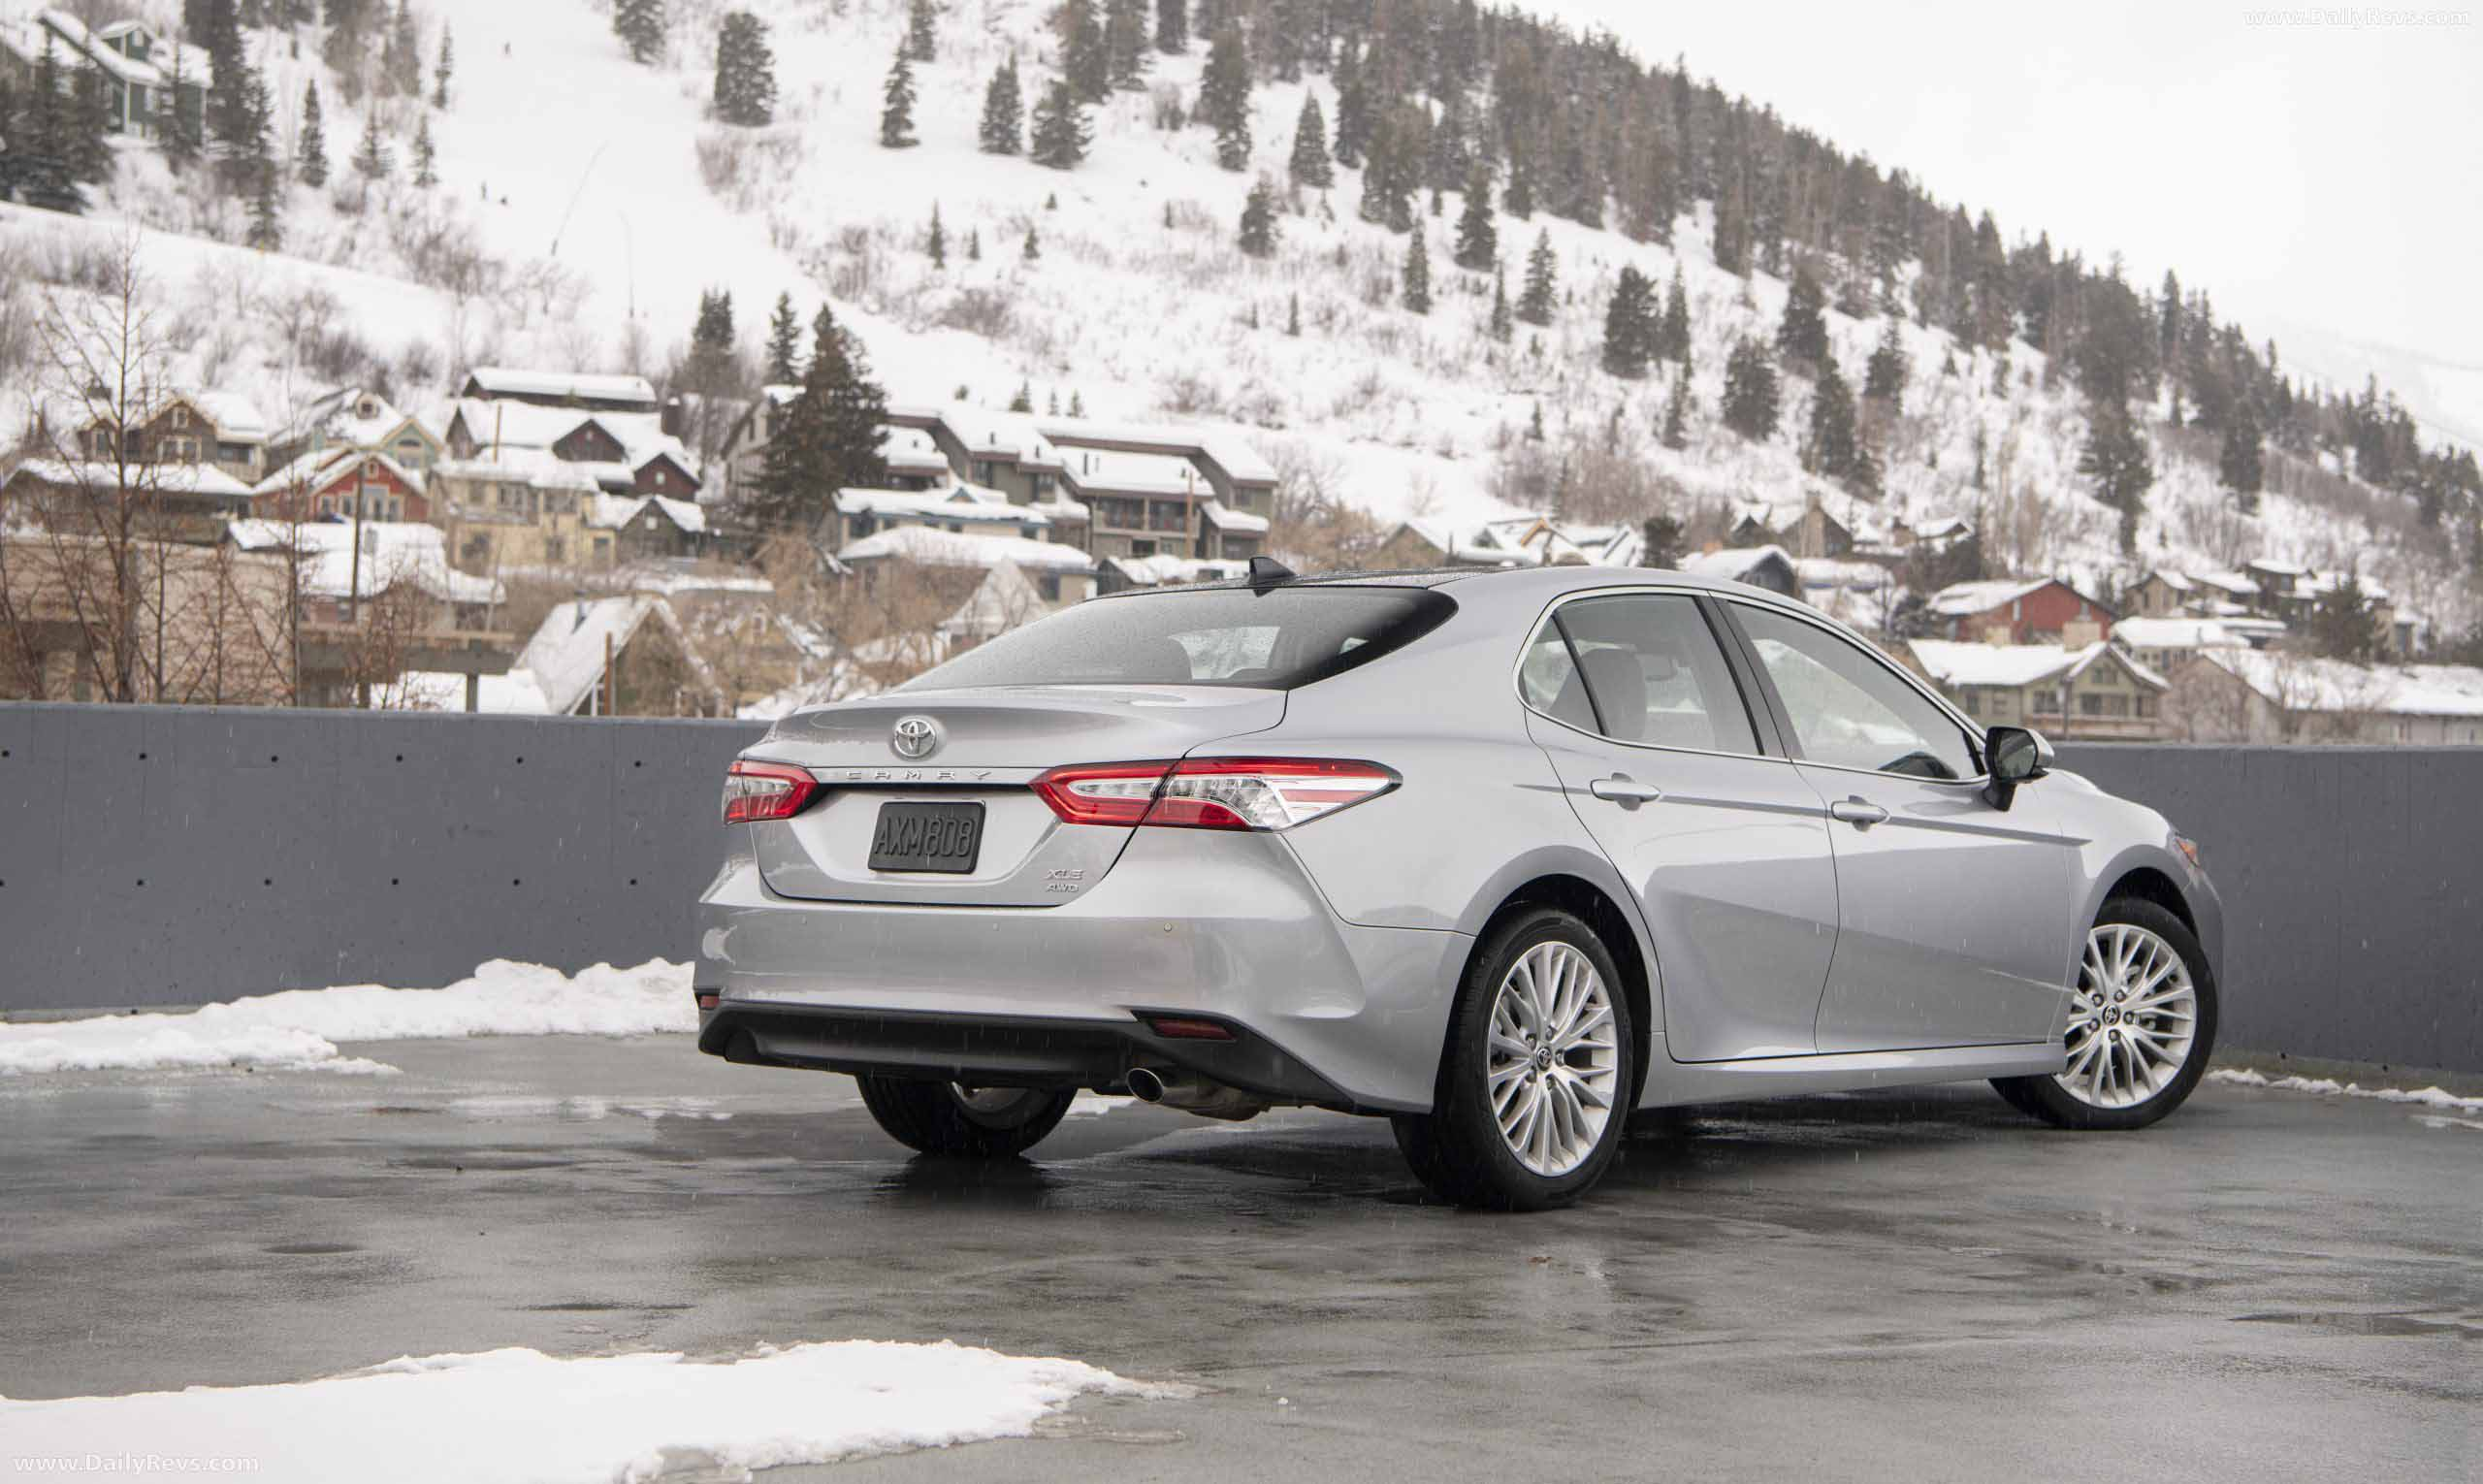 2021 toyota camry xle awd - hd pictures, videos, specs